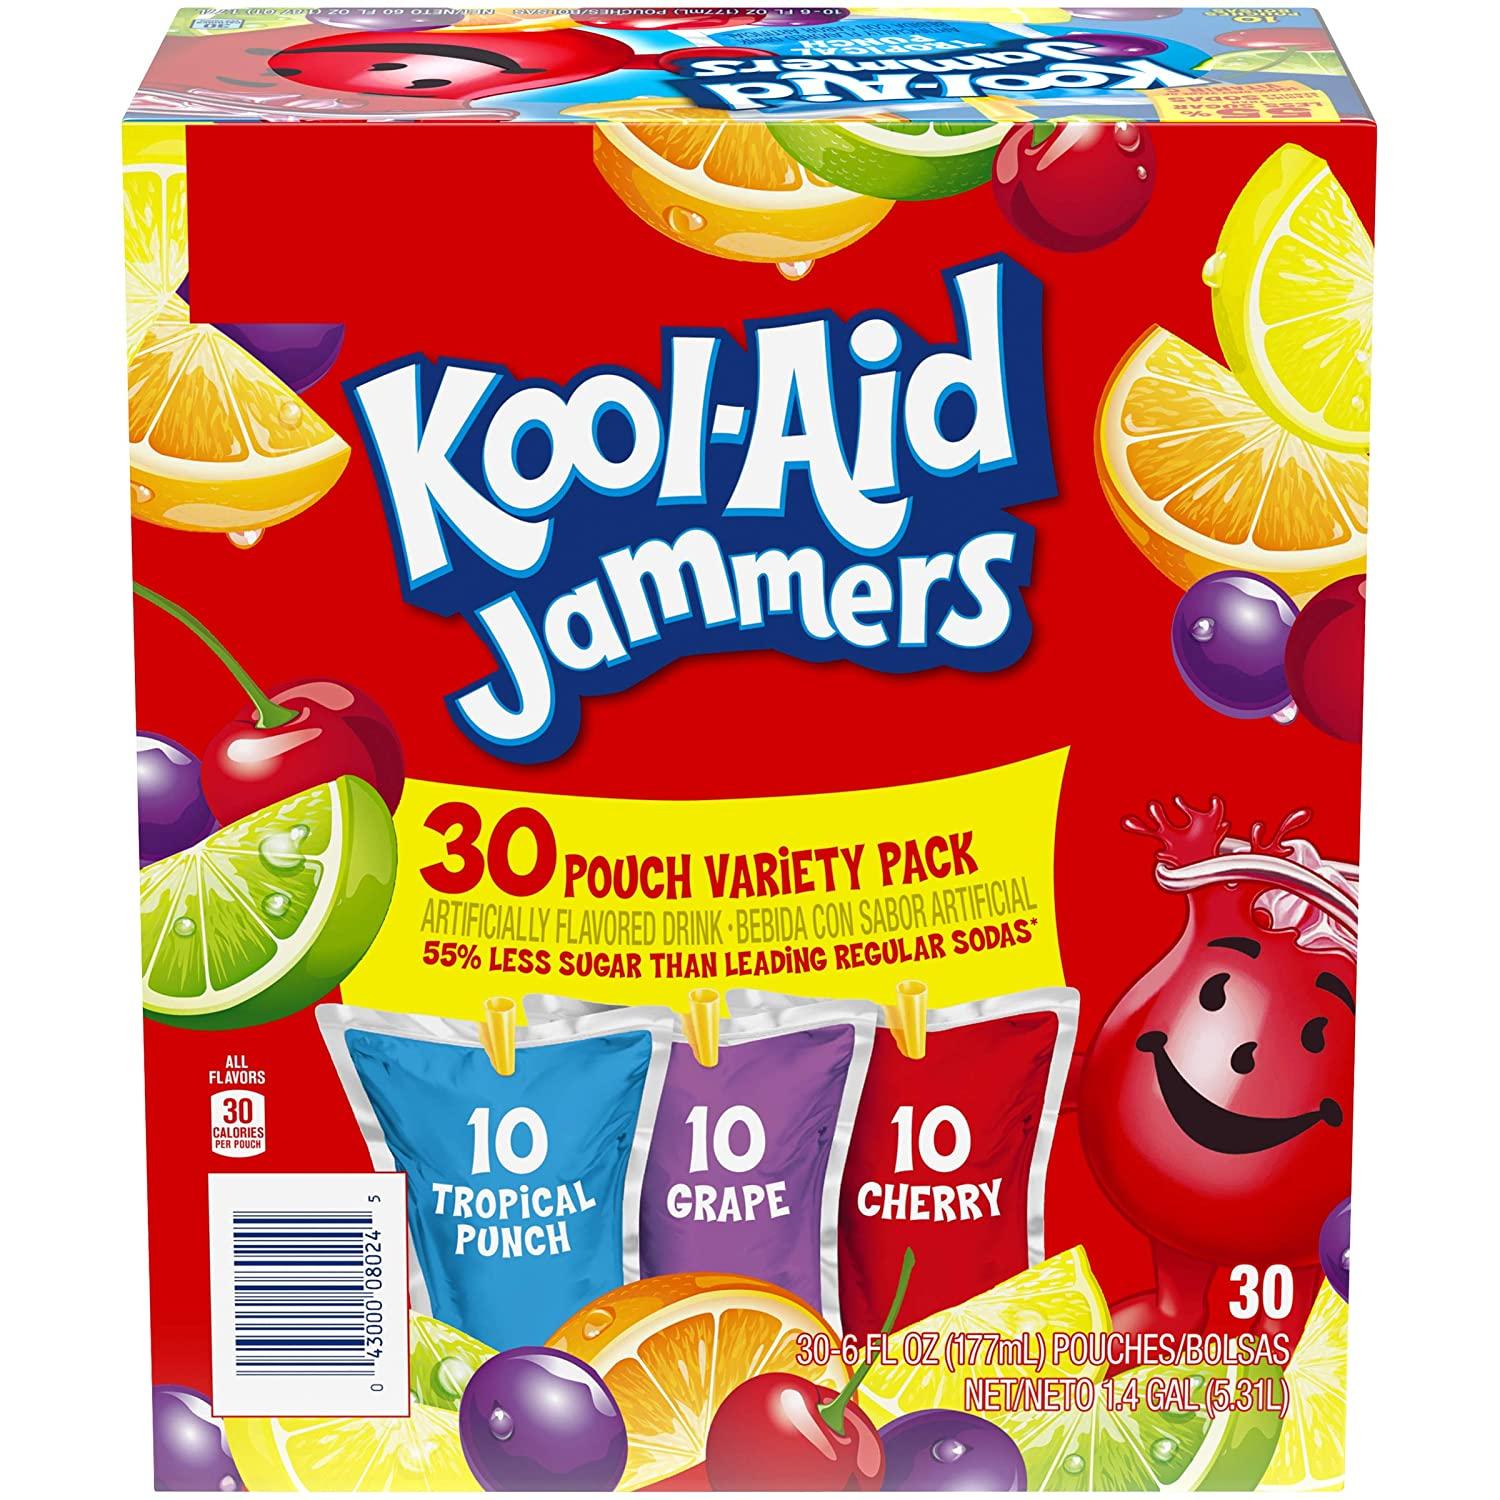 Kool-Aid Jammers Variety Pack 30 - 6 OuncePouches, 30Count